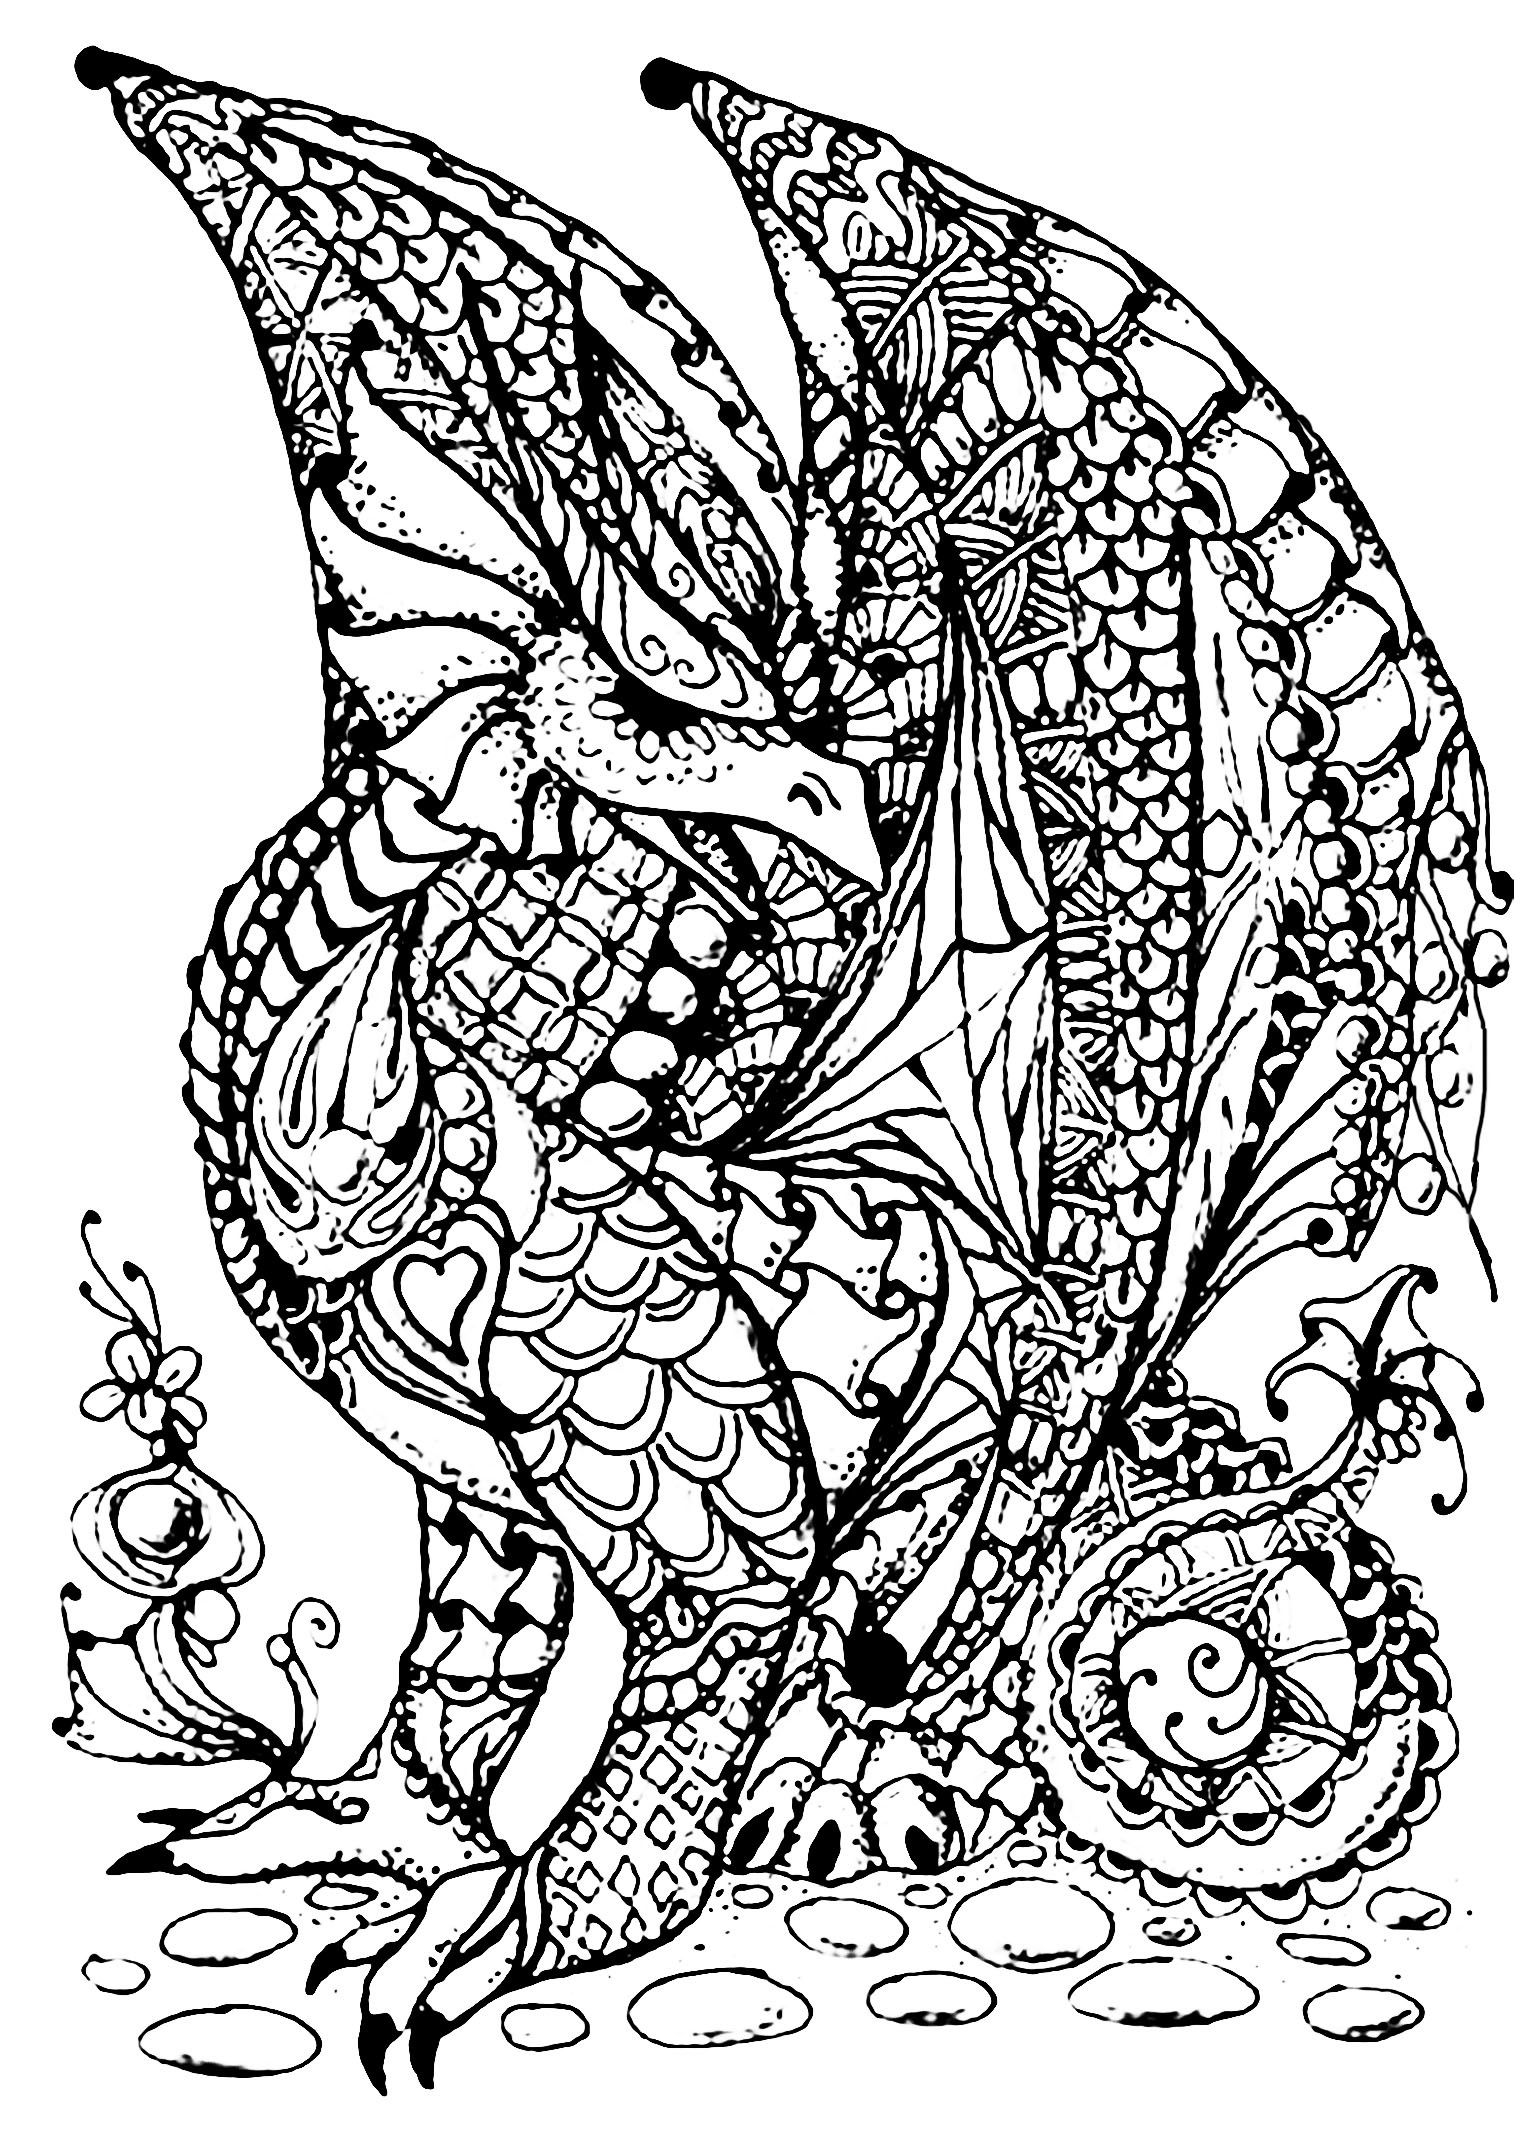 Dragon Coloring Pages To Print Dragon Coloring Page Cool Coloring Pages Ninjago Coloring Pages